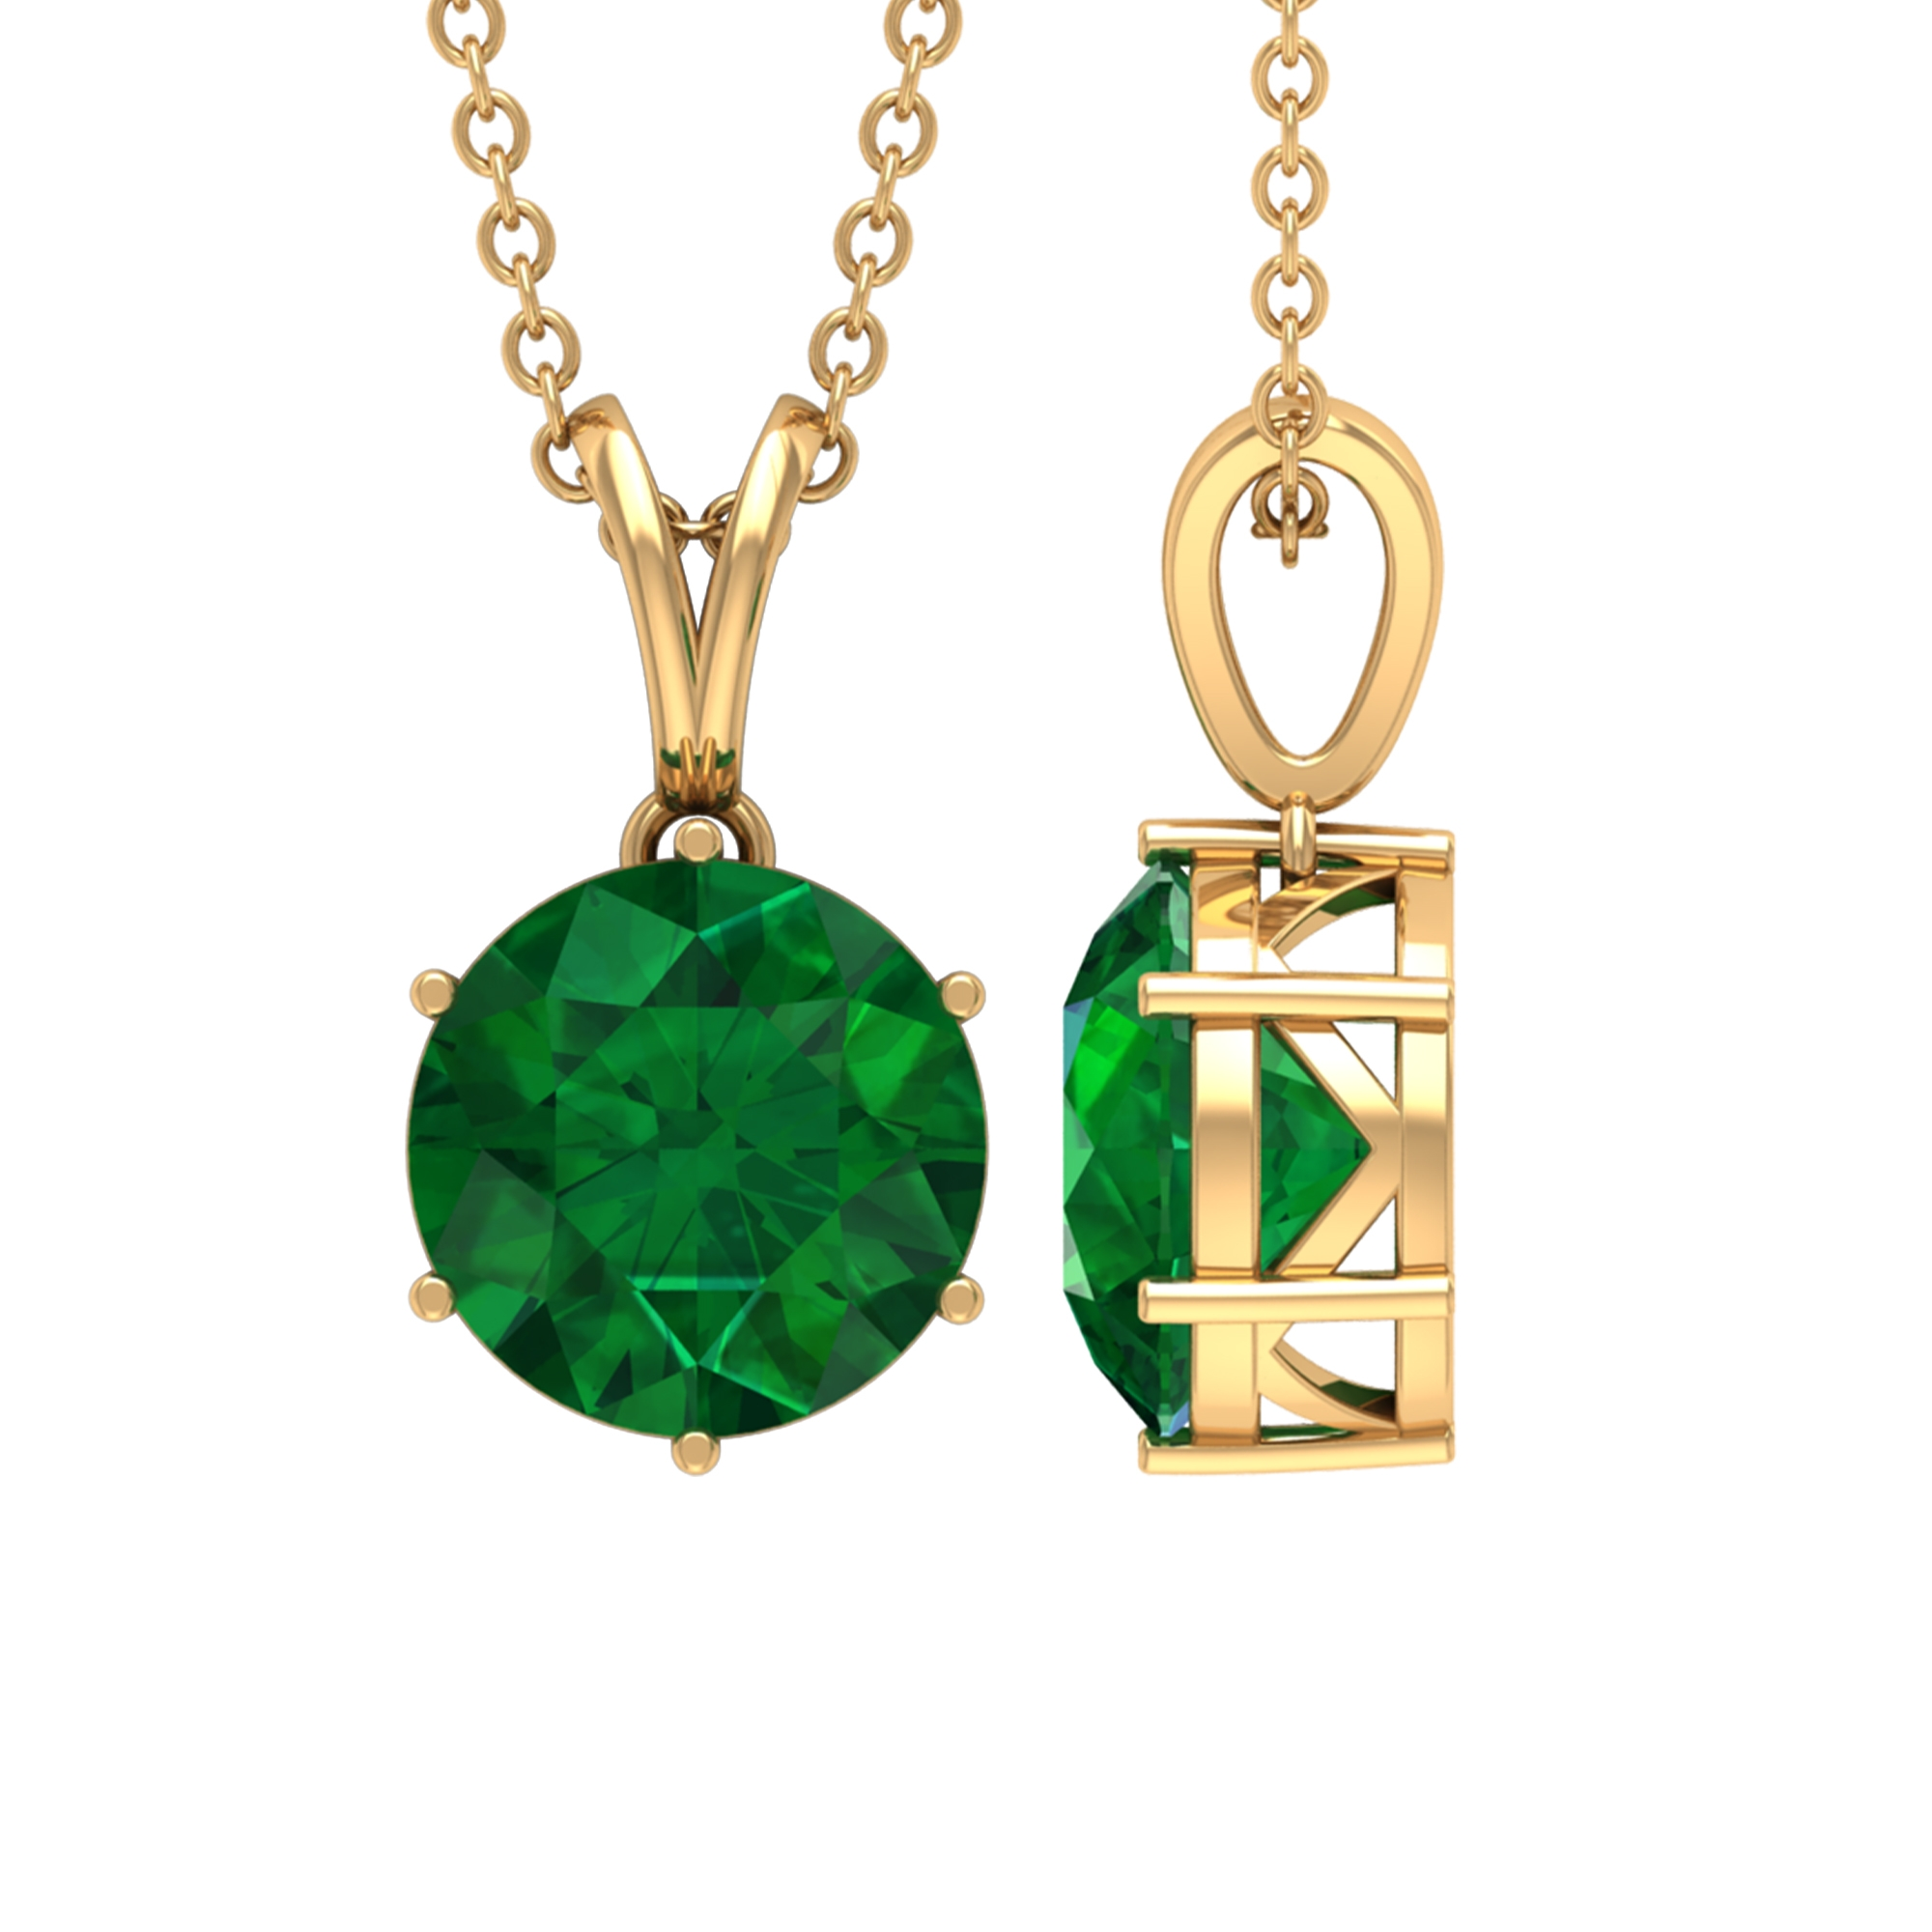 Six Prong Set 8 MM Round Cut Solitaire Emerald Pendant with Rabbit Ear Bail